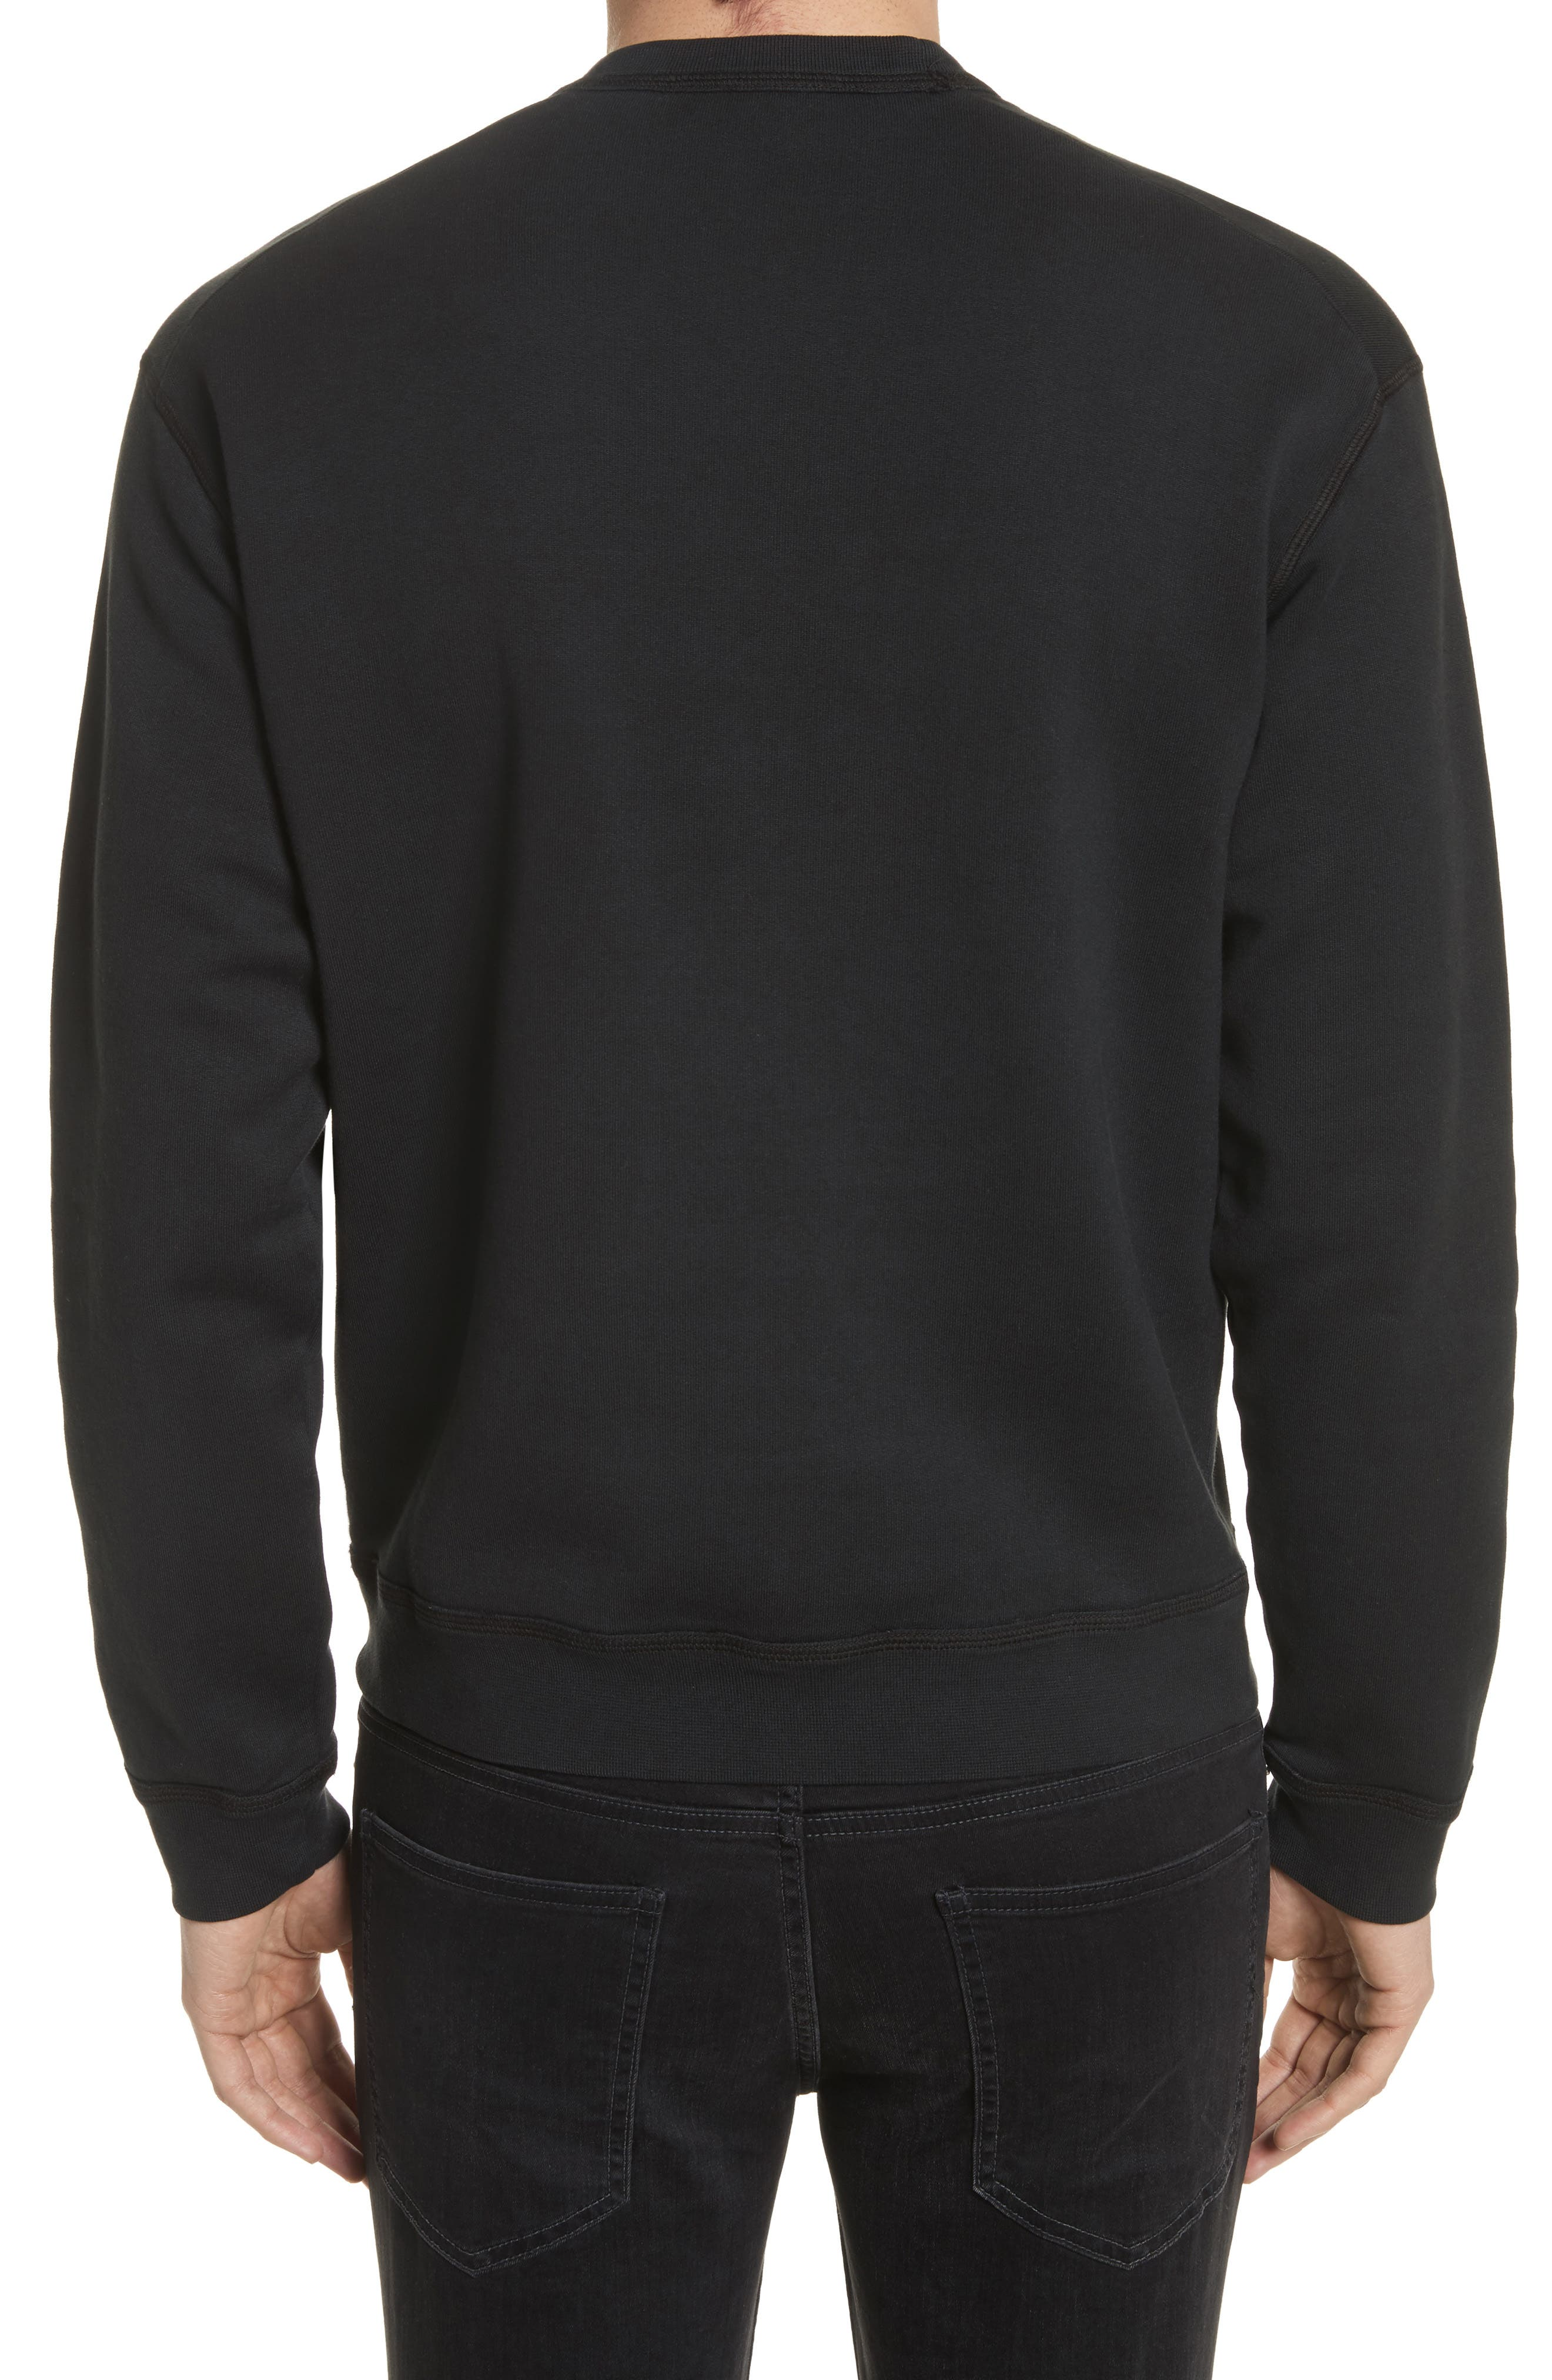 Icon Embroidered Crewneck Sweatshirt,                             Alternate thumbnail 2, color,                             001